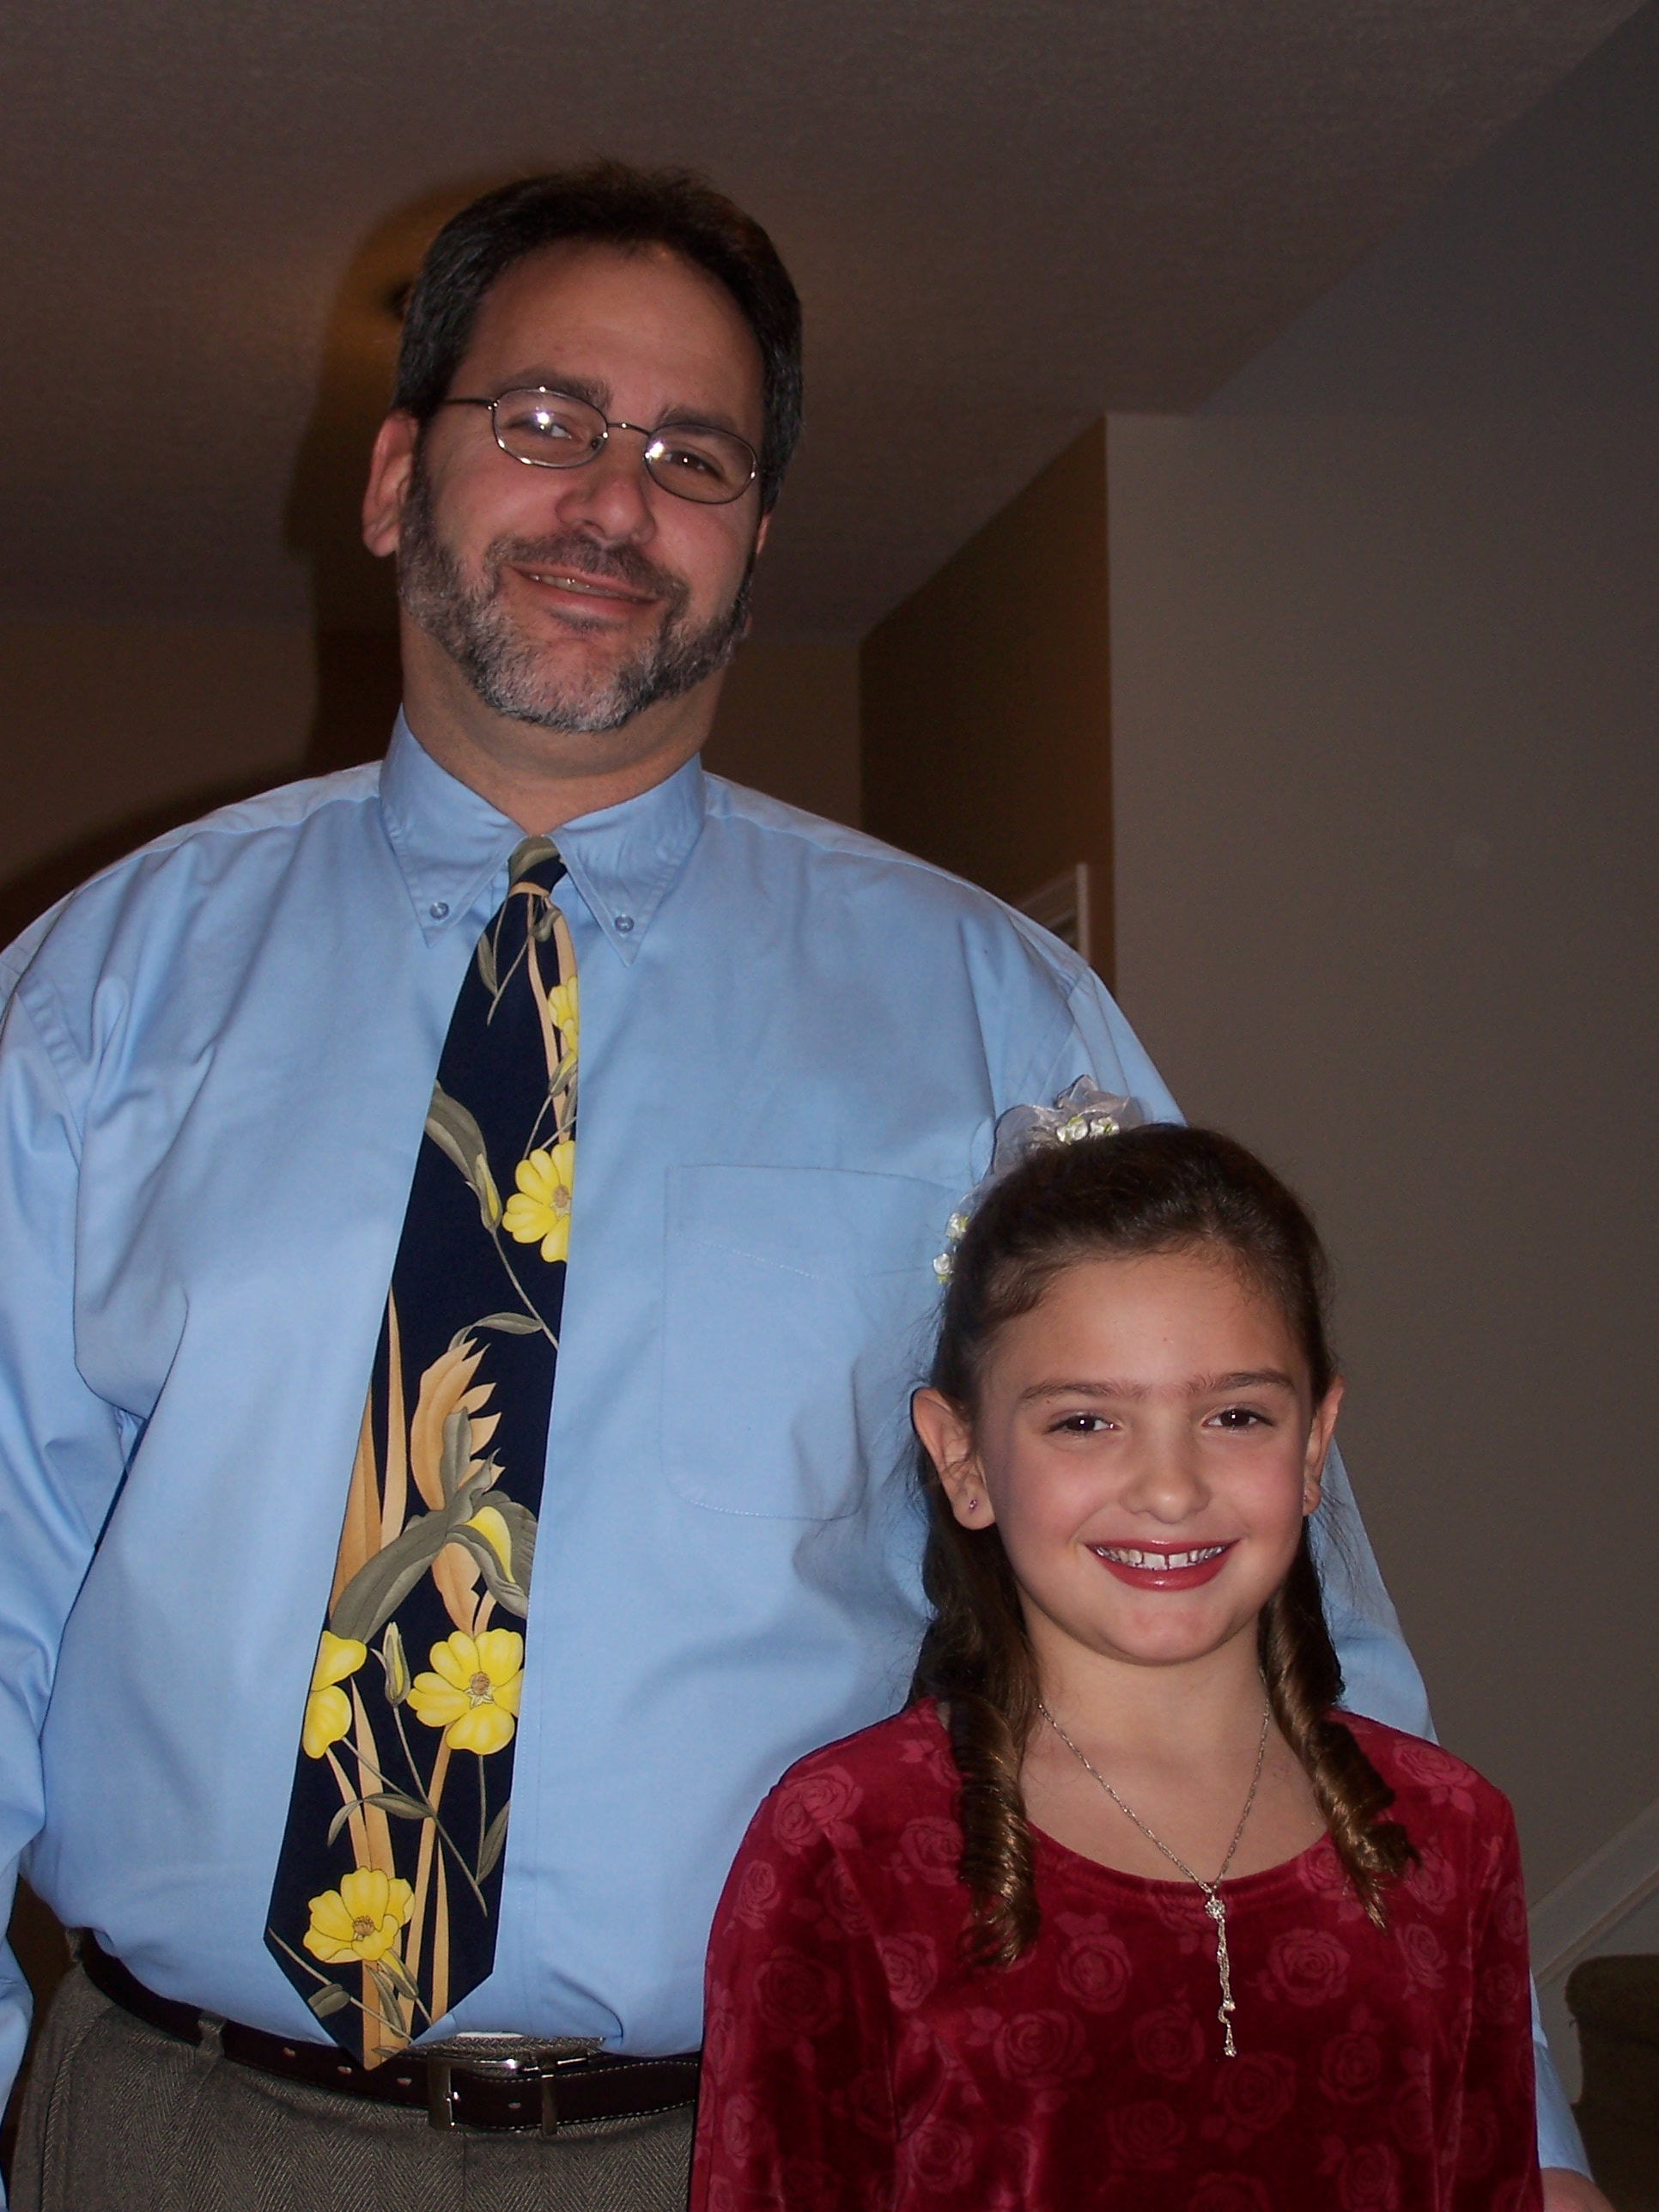 father daughter dance 006.jpg